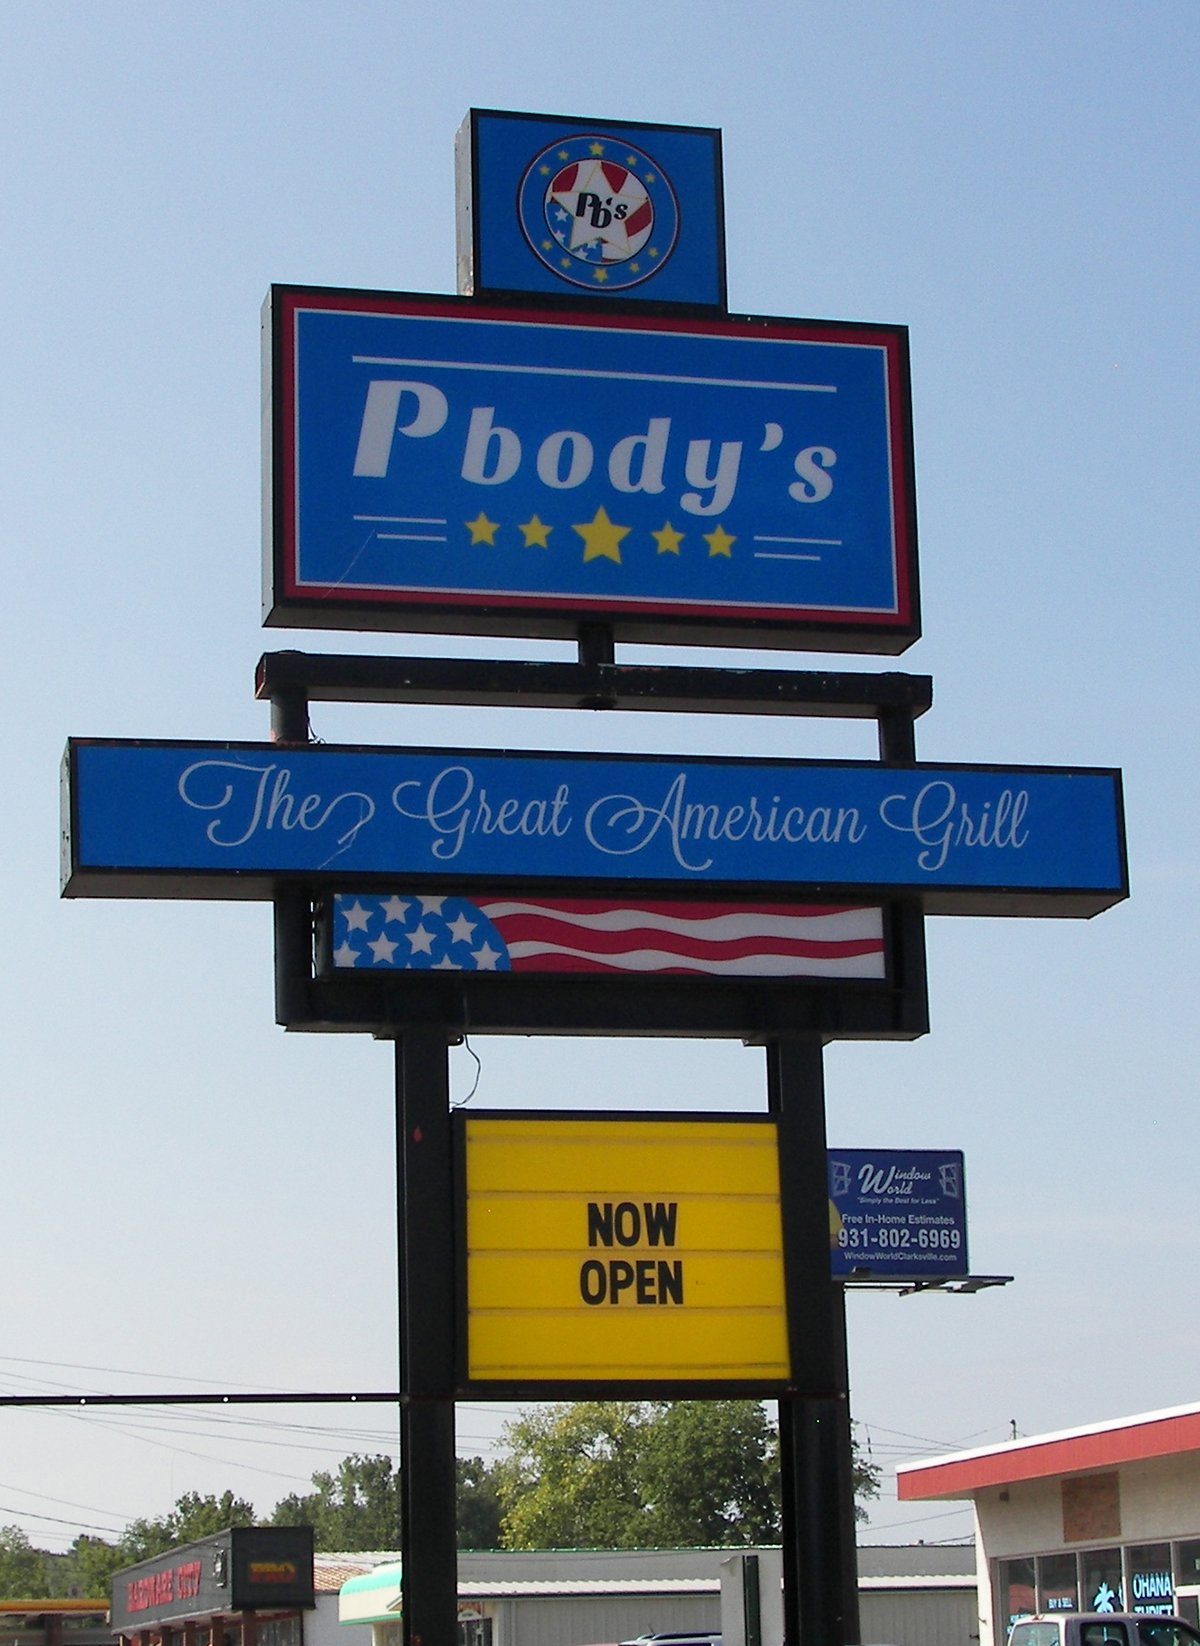 Pbody's - The Great American Grill - Sign